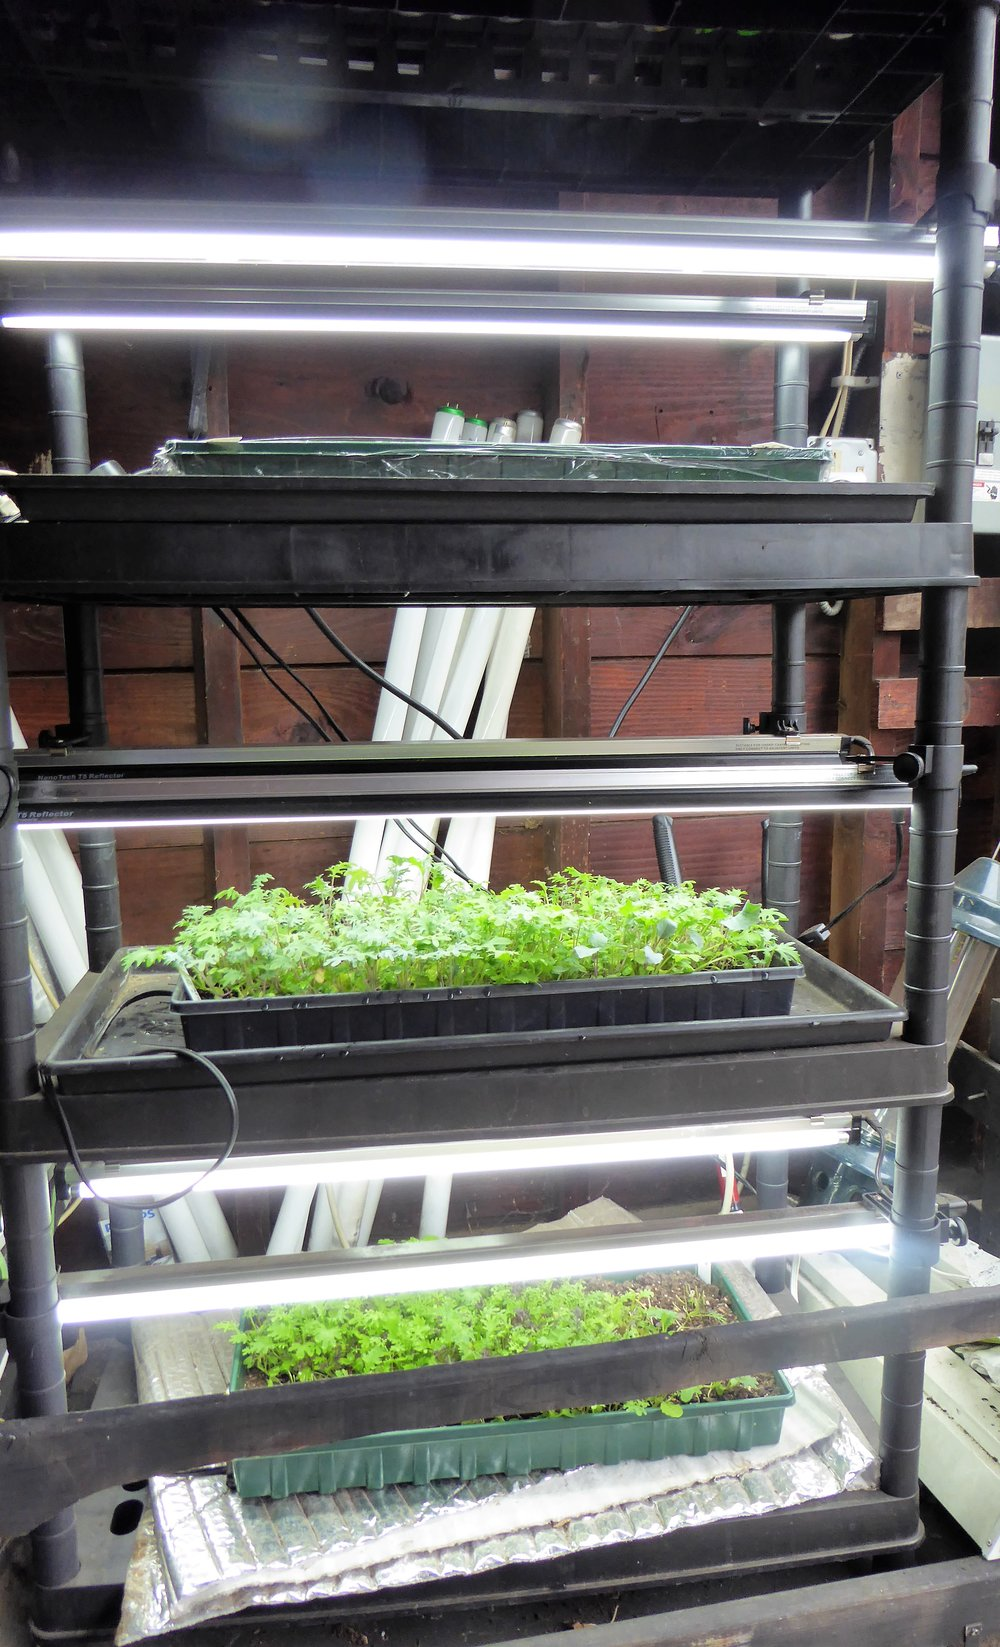 One of my grow light systems.